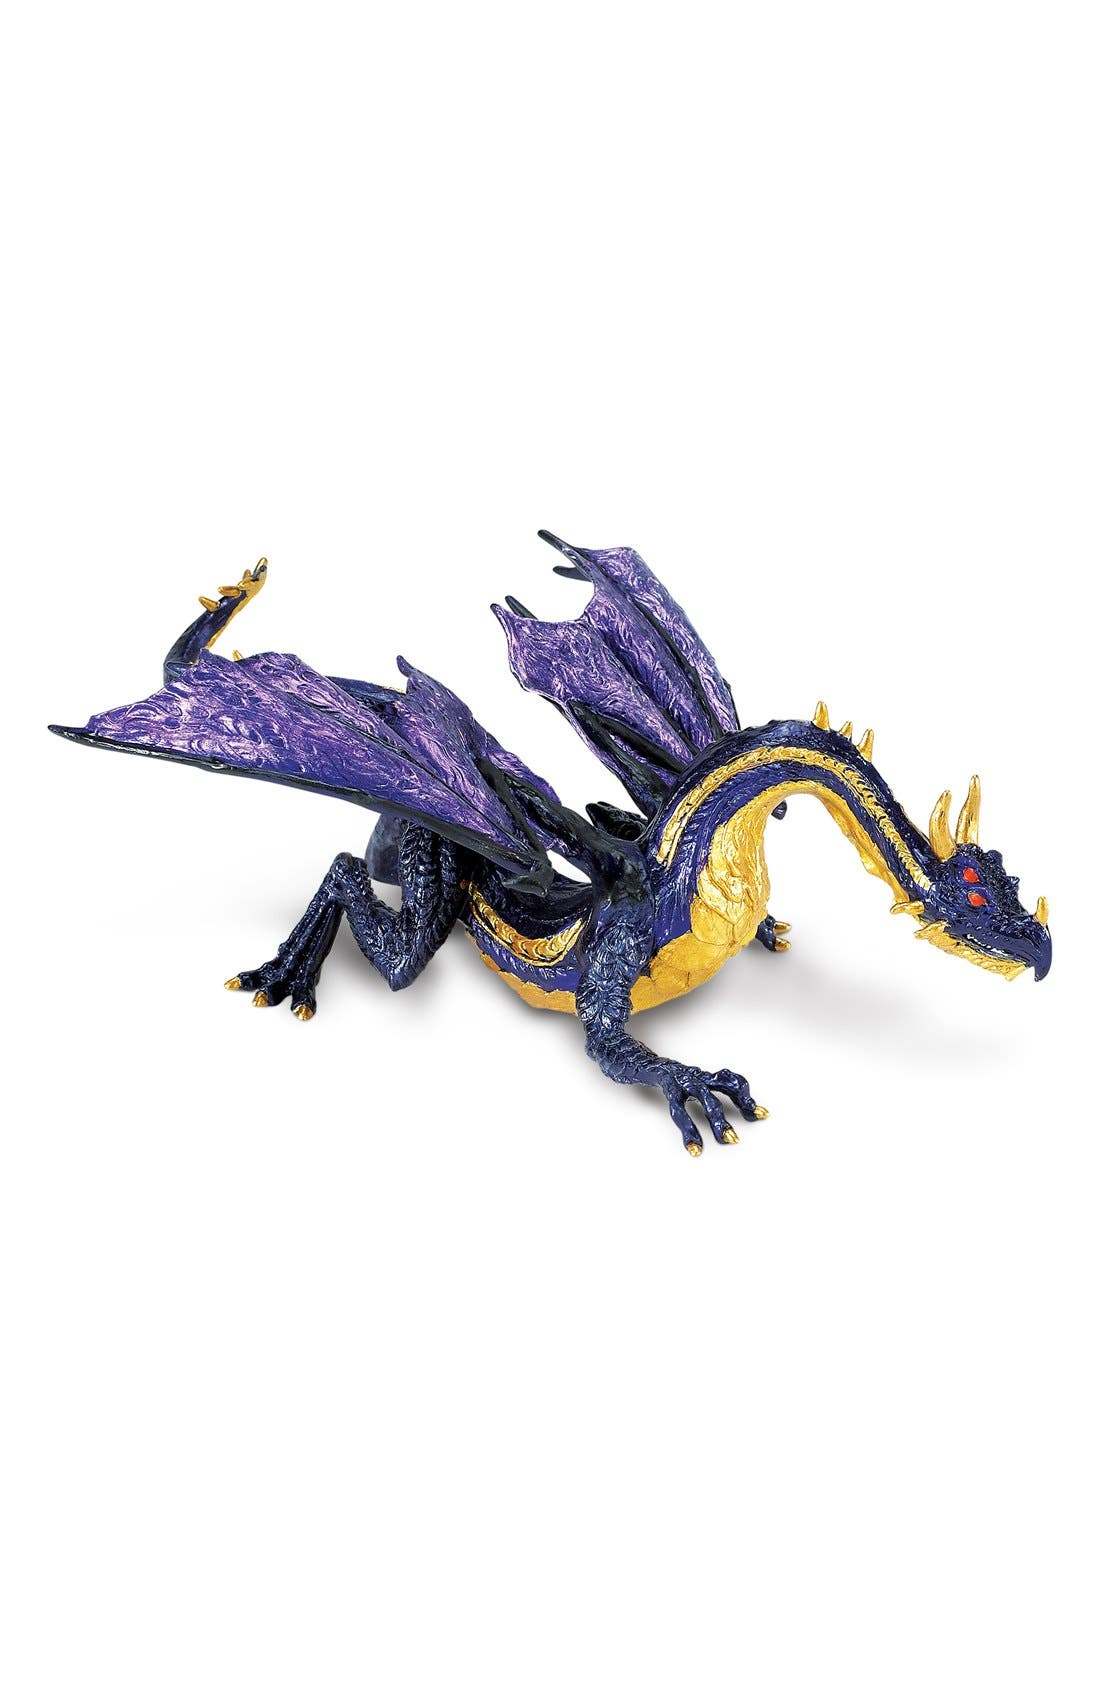 Safari Ltd. Midnight Moon Dragon Figurine